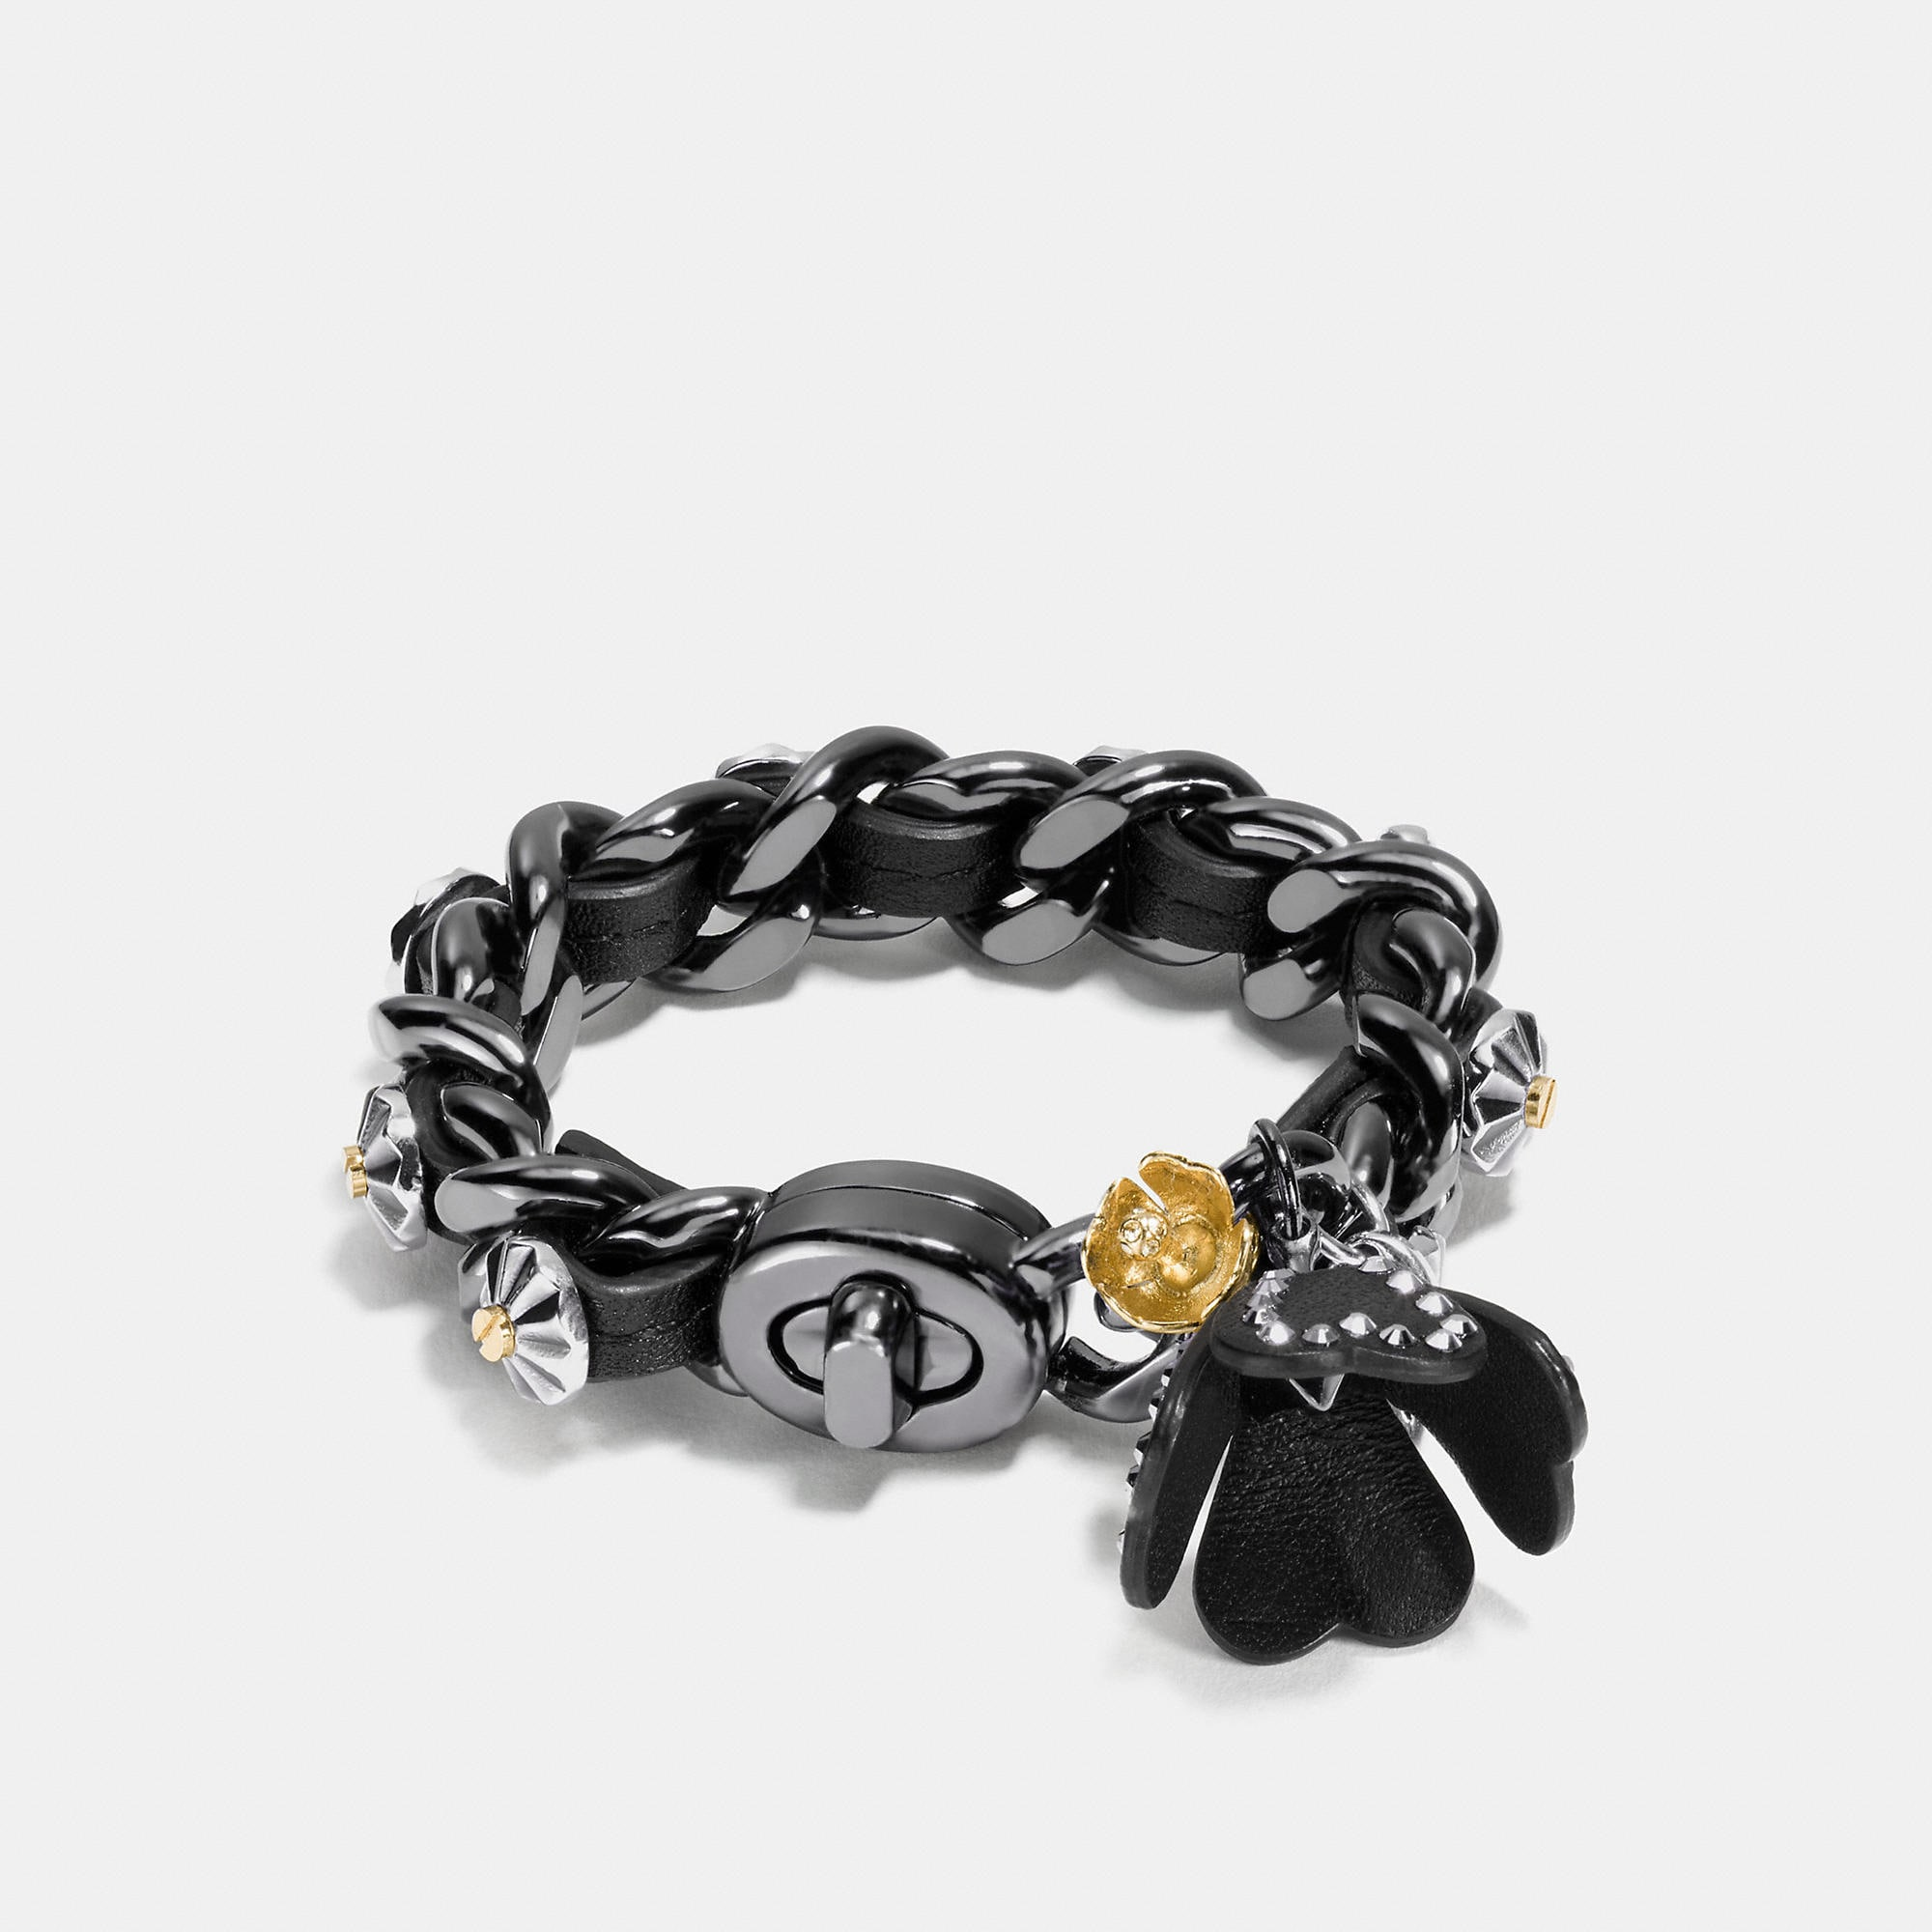 Coach Studded Daisy Rivet Tea Rose Charm Bracelet